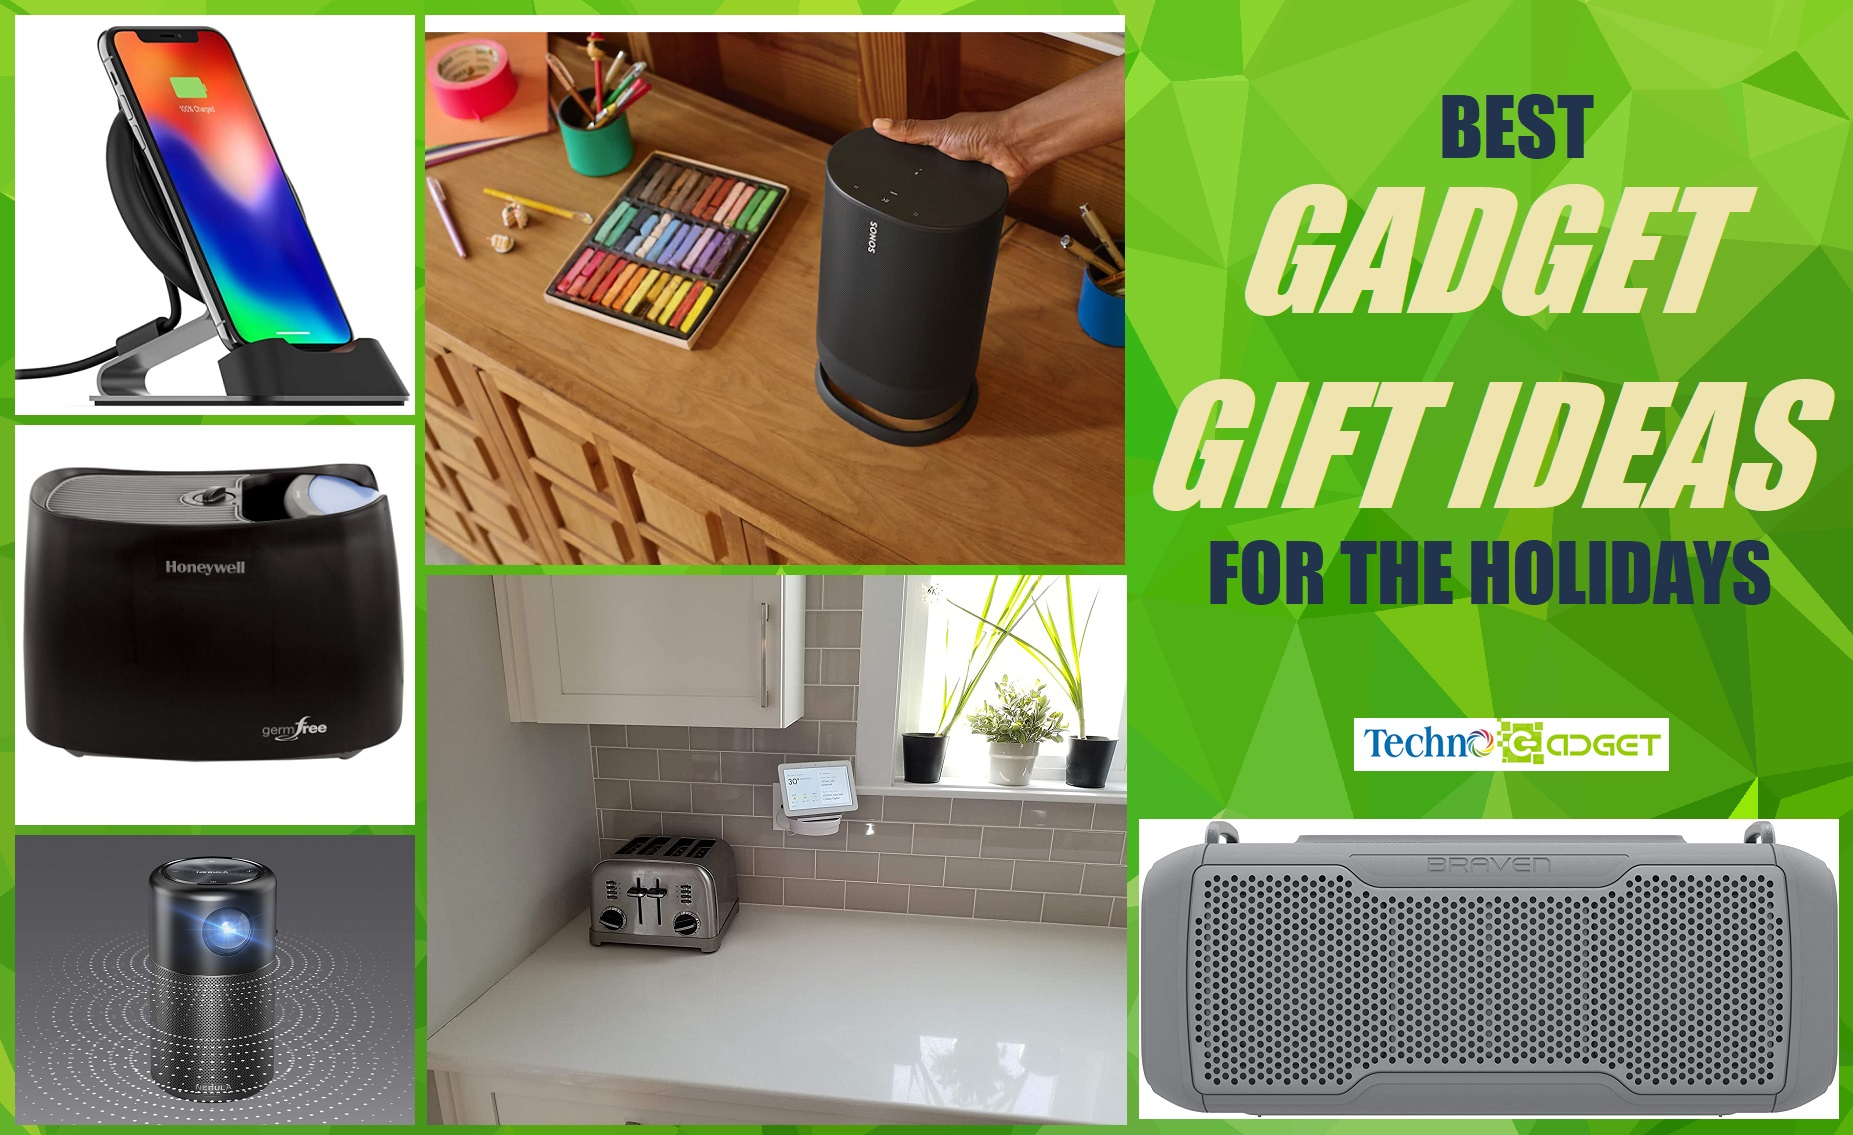 Best Gadget Gift Ideas For The Holidays